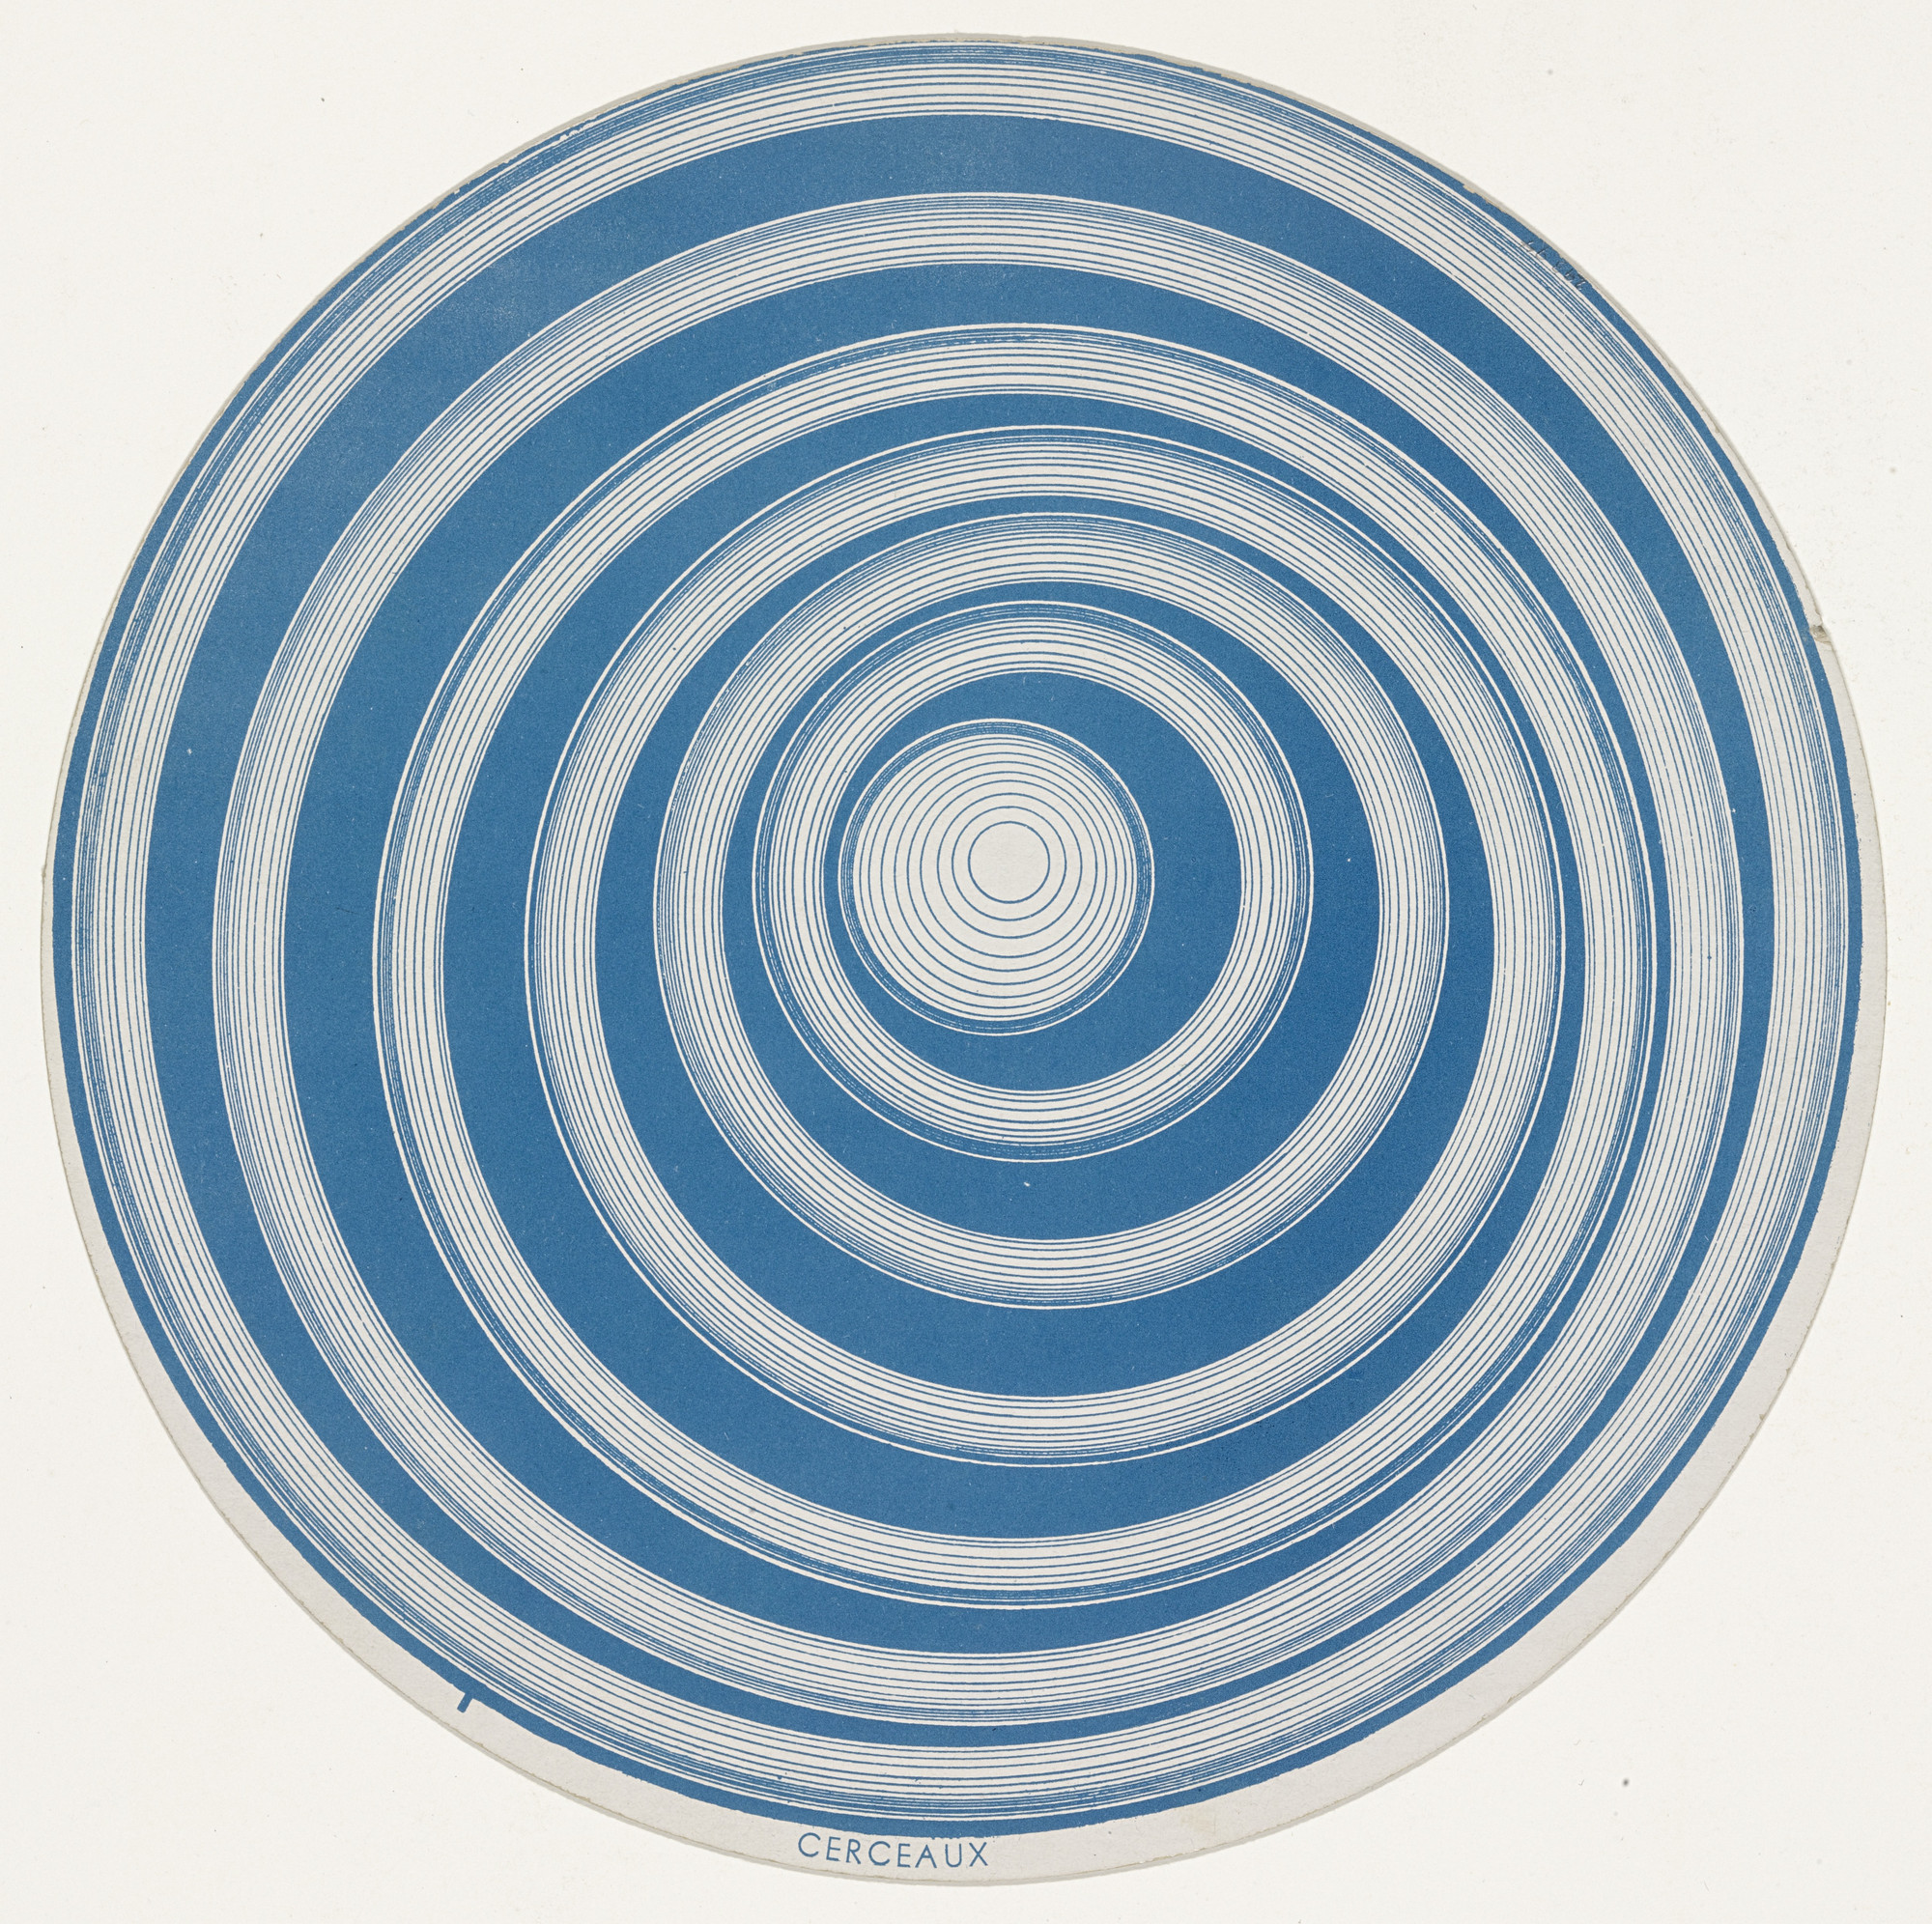 Marcel Duchamp. Rotoreliefs (Optical Disks). 1935, published 1953